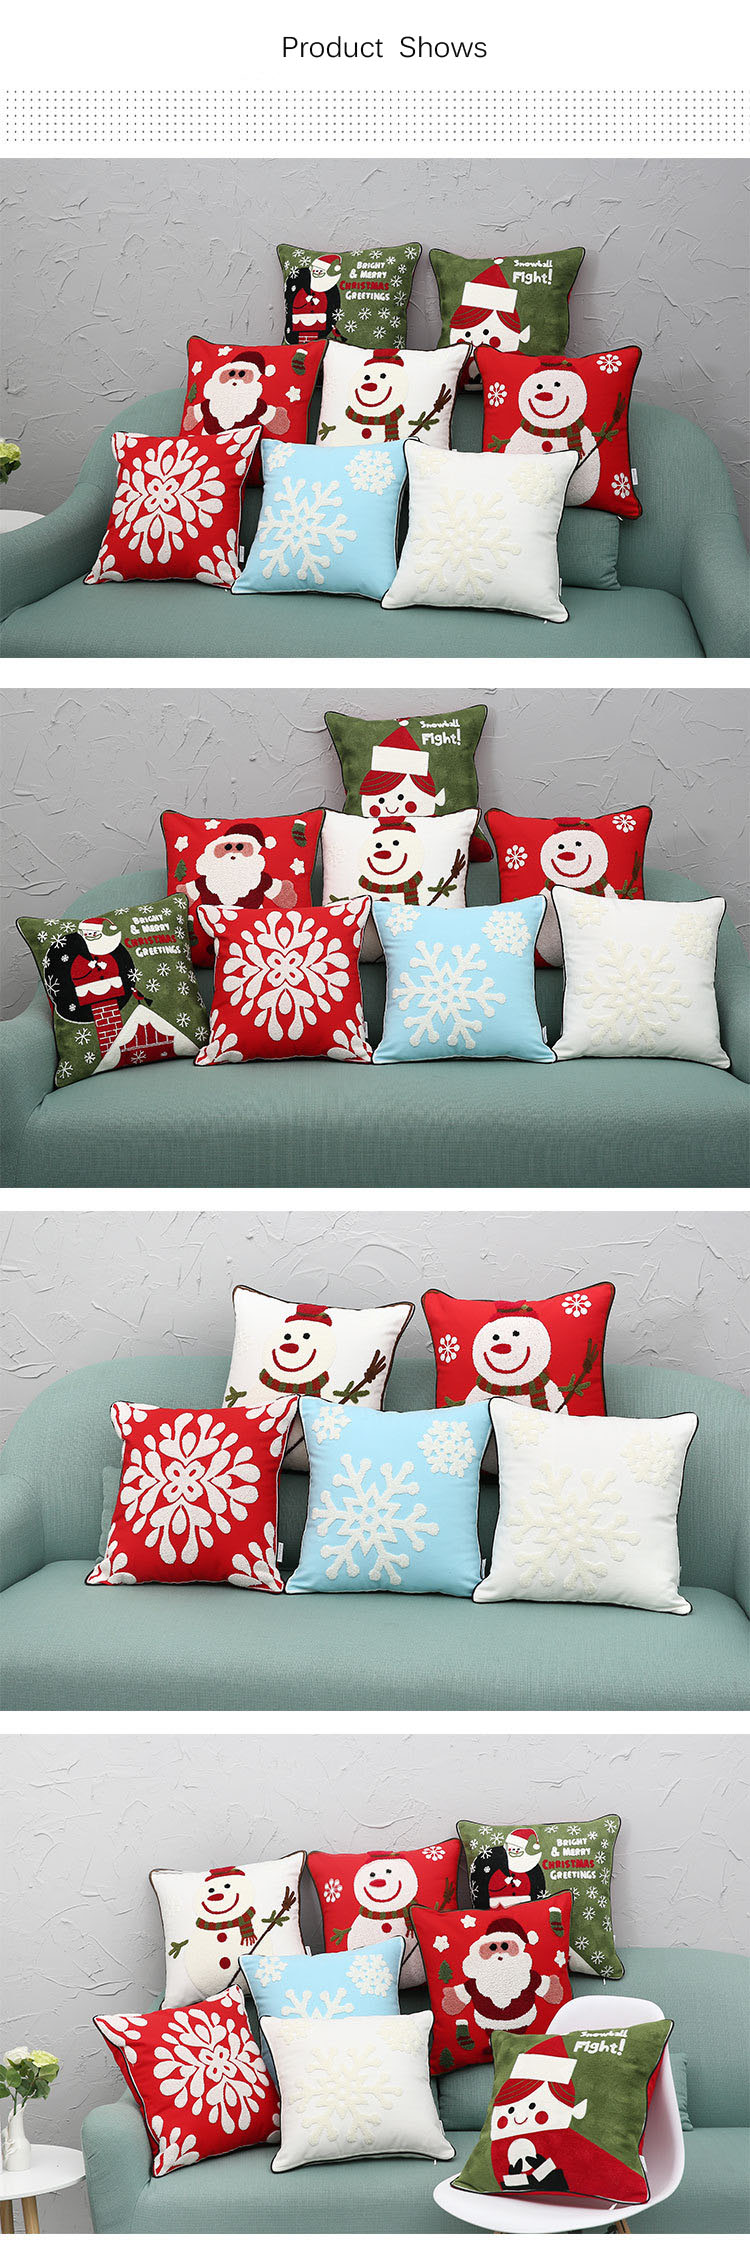 New Christmas Pure Cotton Embroidering Pillow Cases Santa Snowflake Cushion Cover For Sofa Car Home Decorative